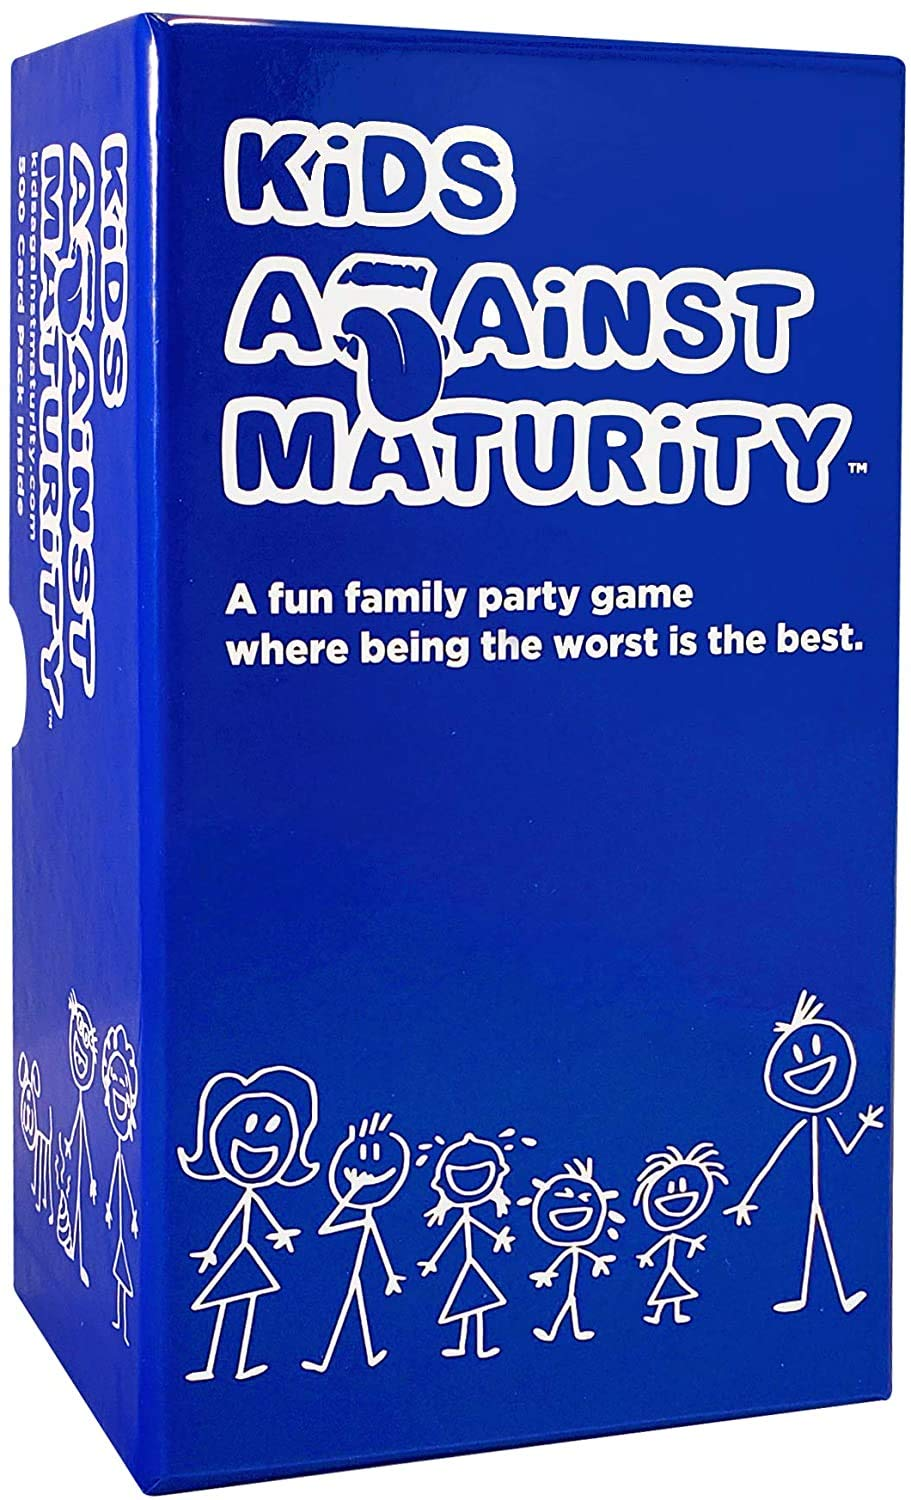 Kids Against Maturity: Card Game for Kids and Families Super Fun Hilarious for Family Party Game Night